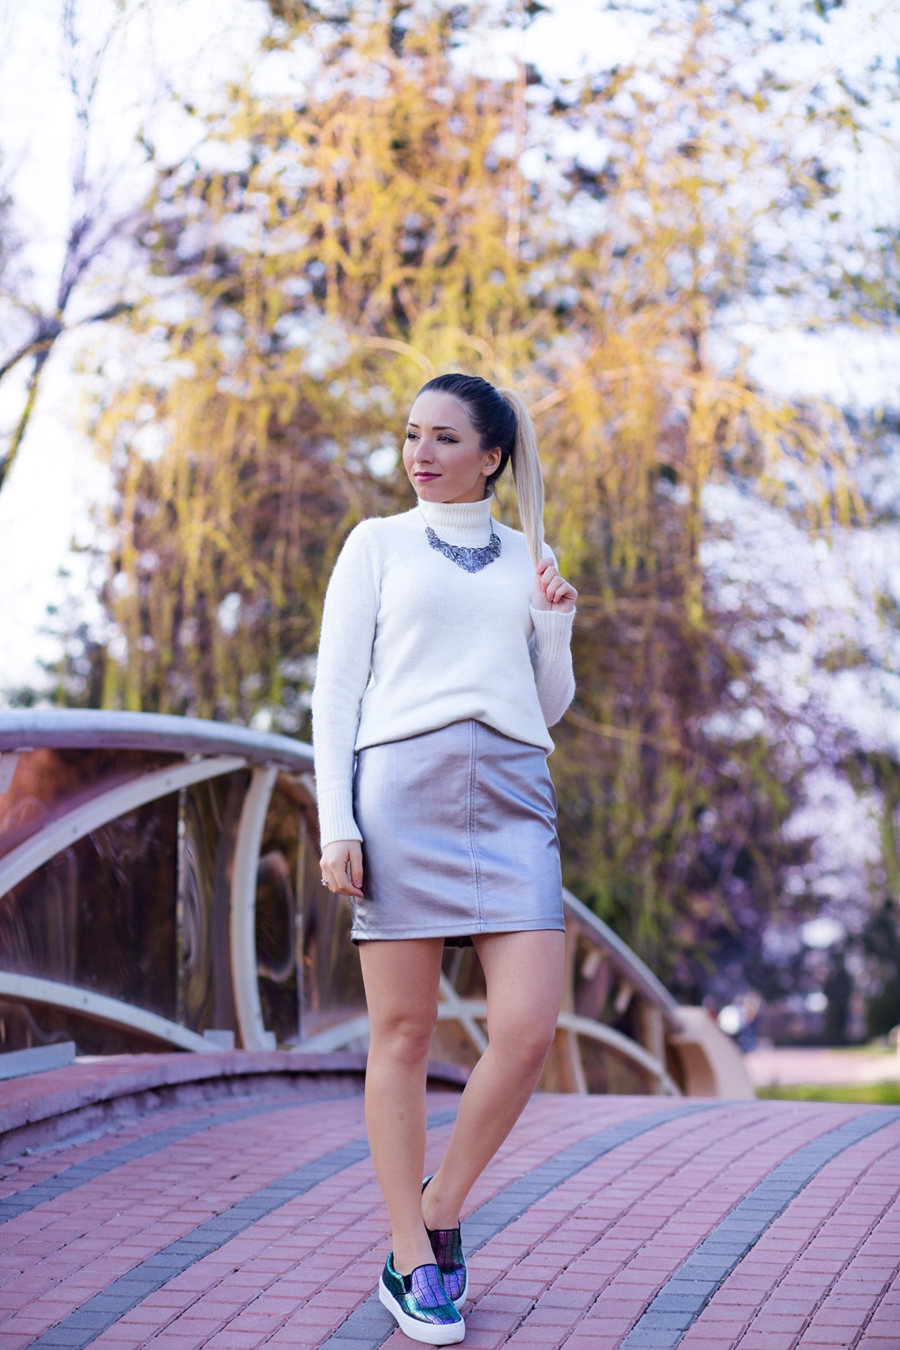 Street style - white turtleneck white sweater, metallic silver skirt, chameleon sport shoes - spring outfit